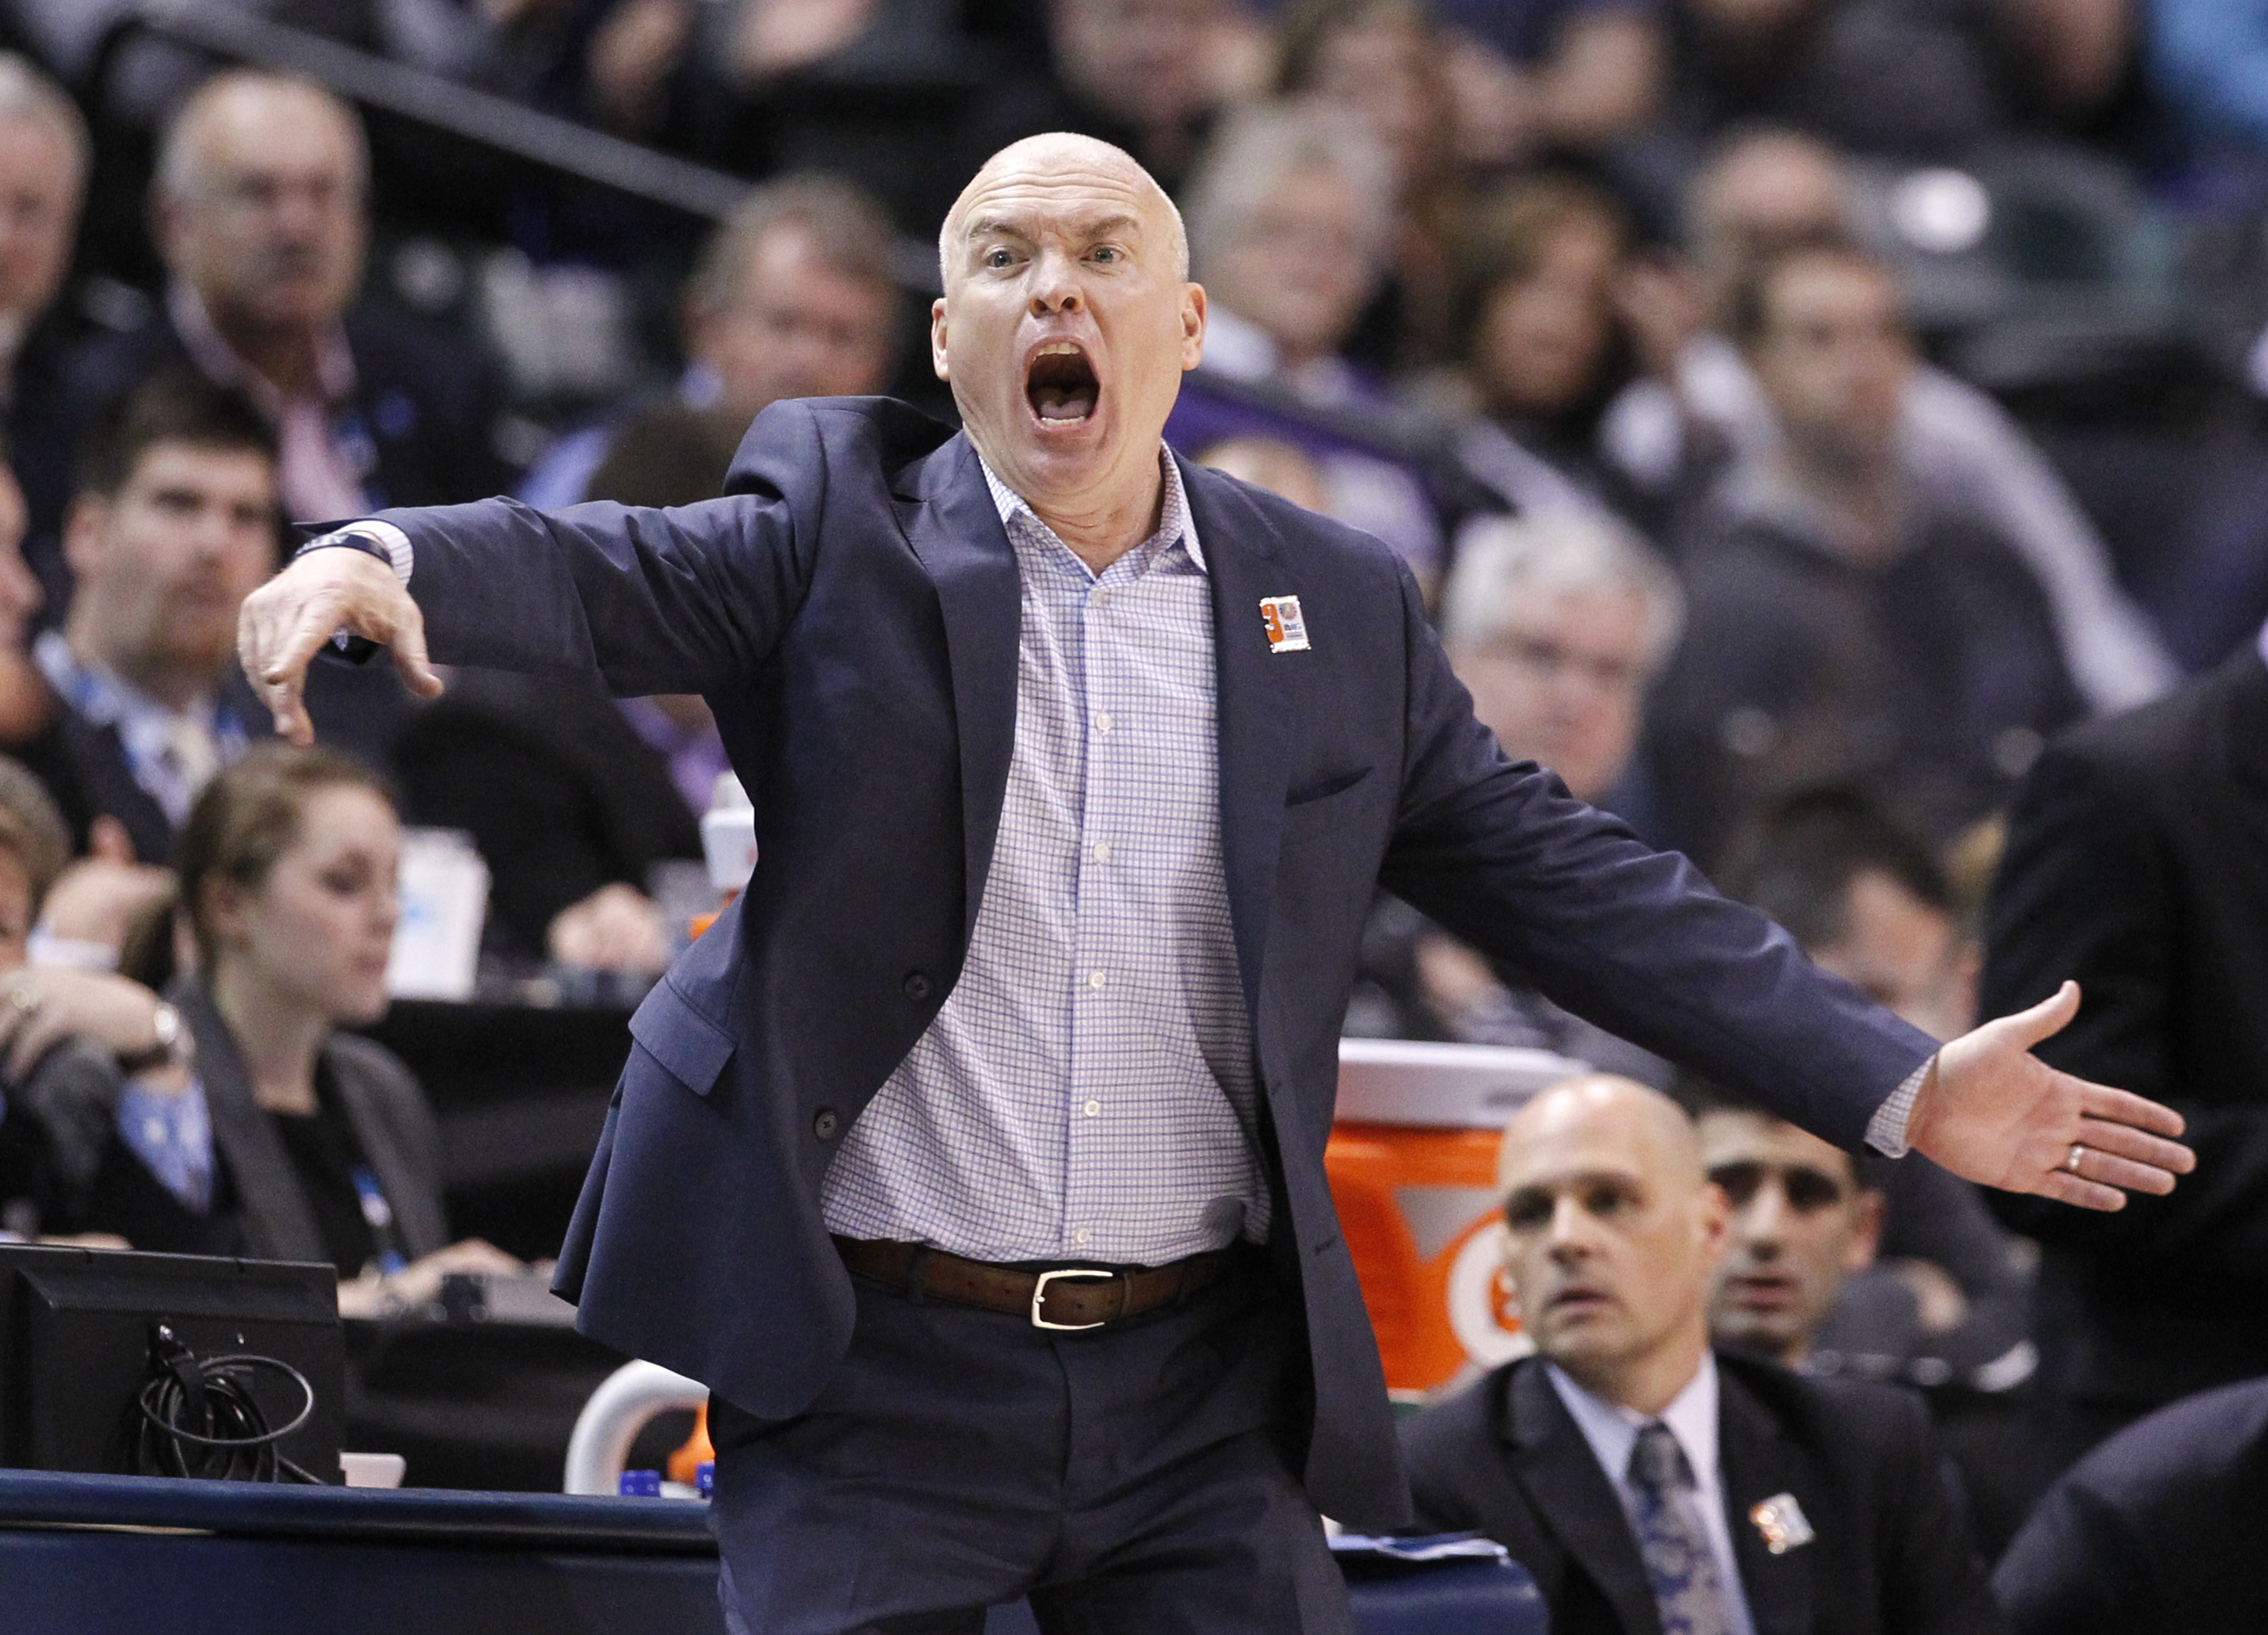 Penn State's head coach Pat Chambers yells in the second half of an NCAA college basketball game against Ohio State at the Big Ten Conference tournament, Thursday, March 10, 2016, in Indianapolis. (AP Photo/Kiichiro Sato)